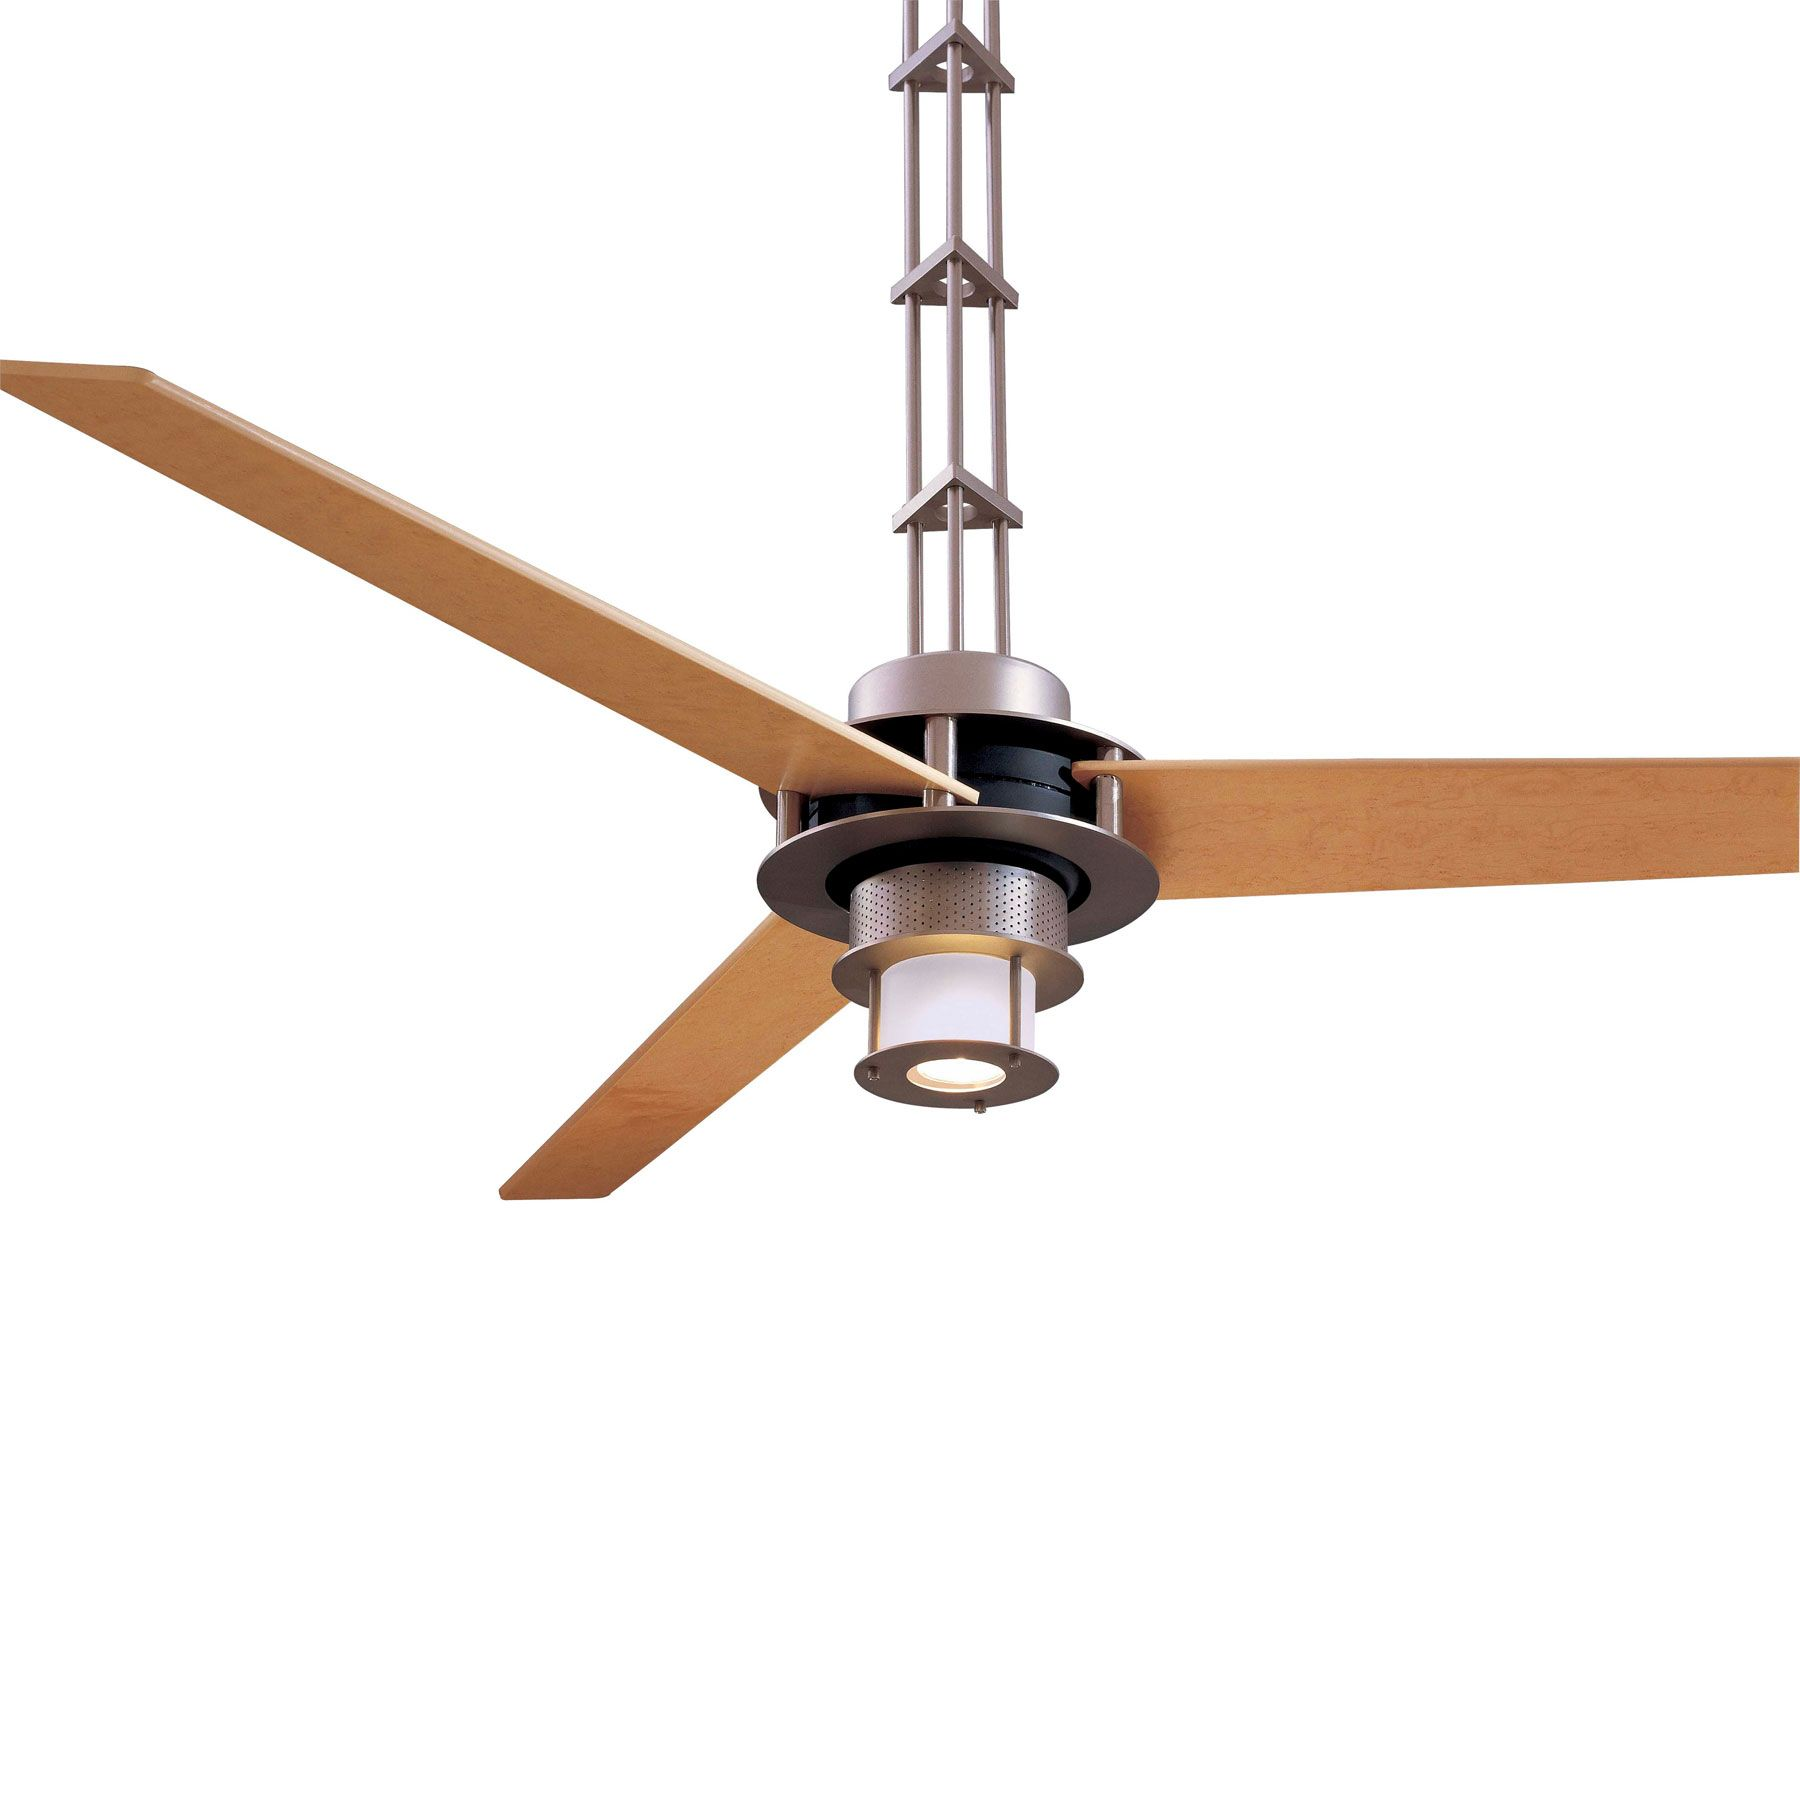 San Francisco Ceiling Fan With Light In Brushed Steel Finish With Maple Blades Is The Epitome Of Mode Ceiling Fan Ceiling Fan With Light Minka Aire Ceiling Fan